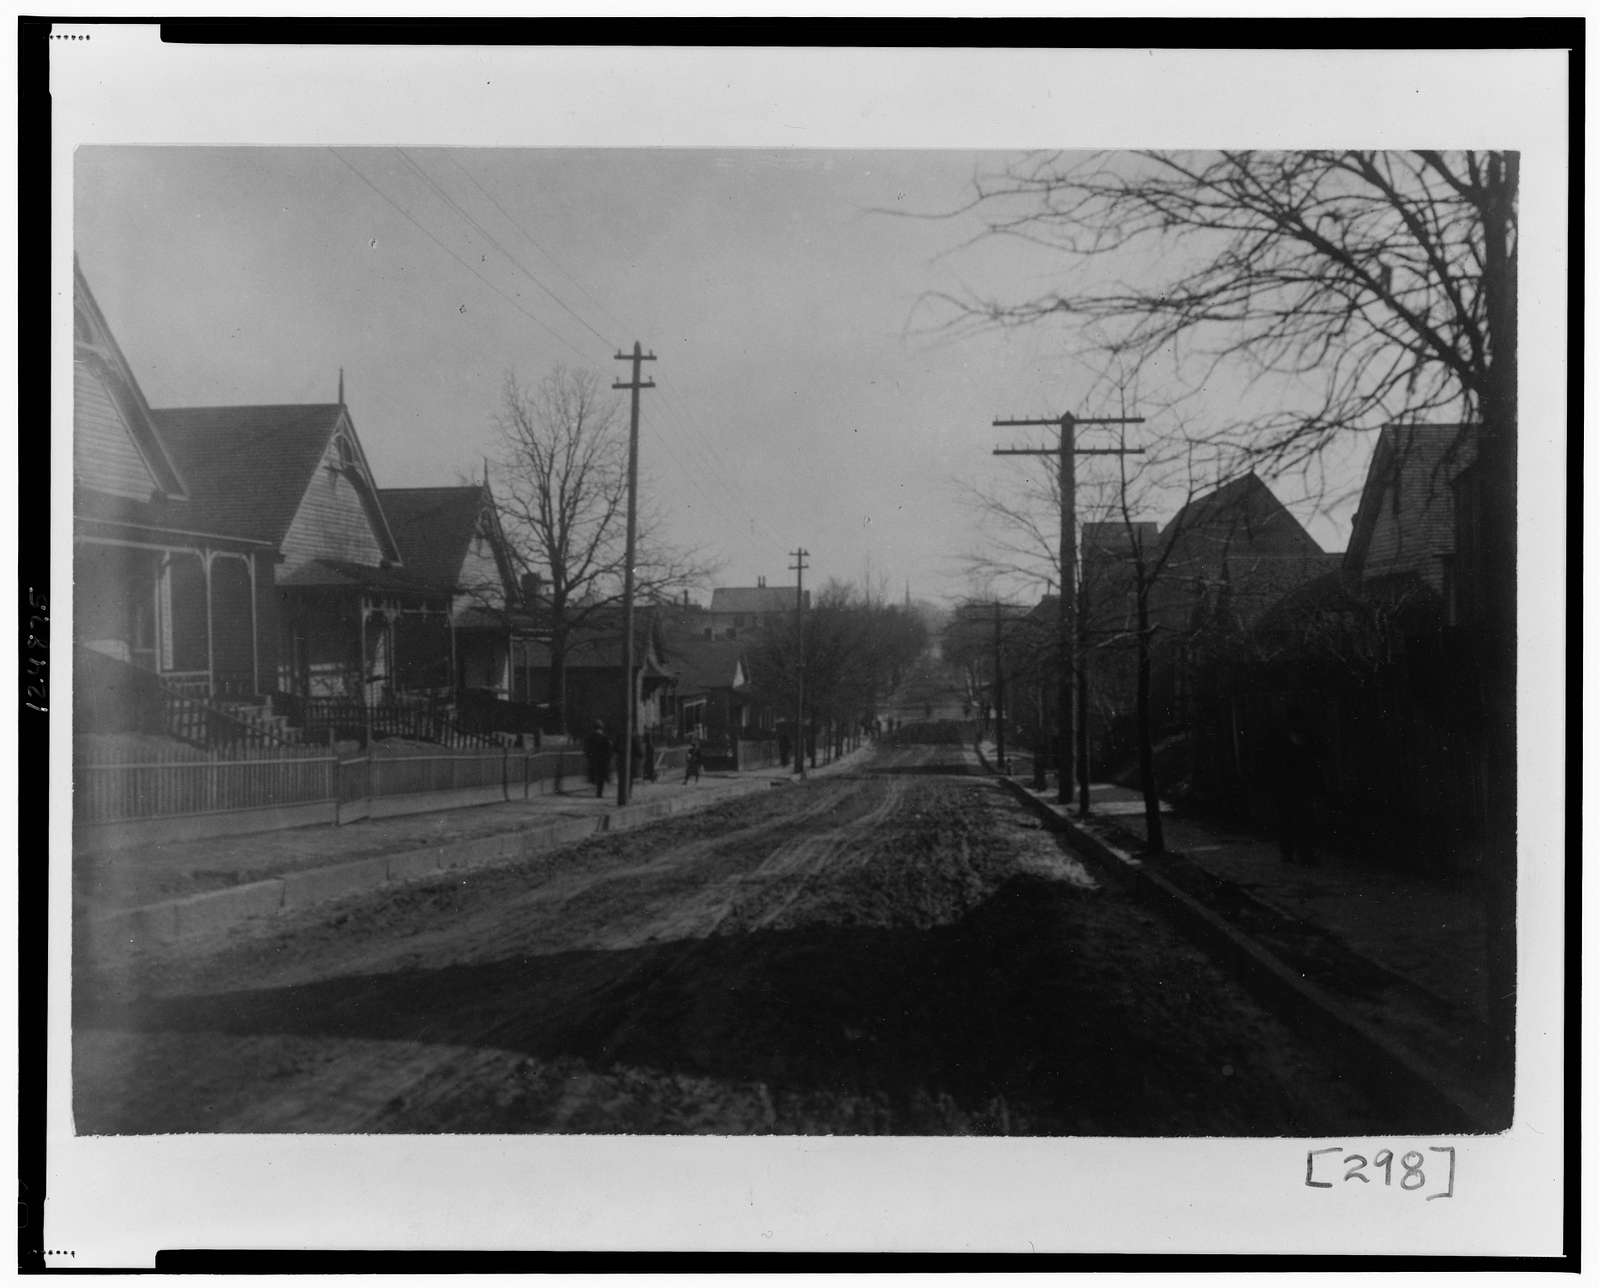 [View of unpaved street with houses along each side in Georgia]